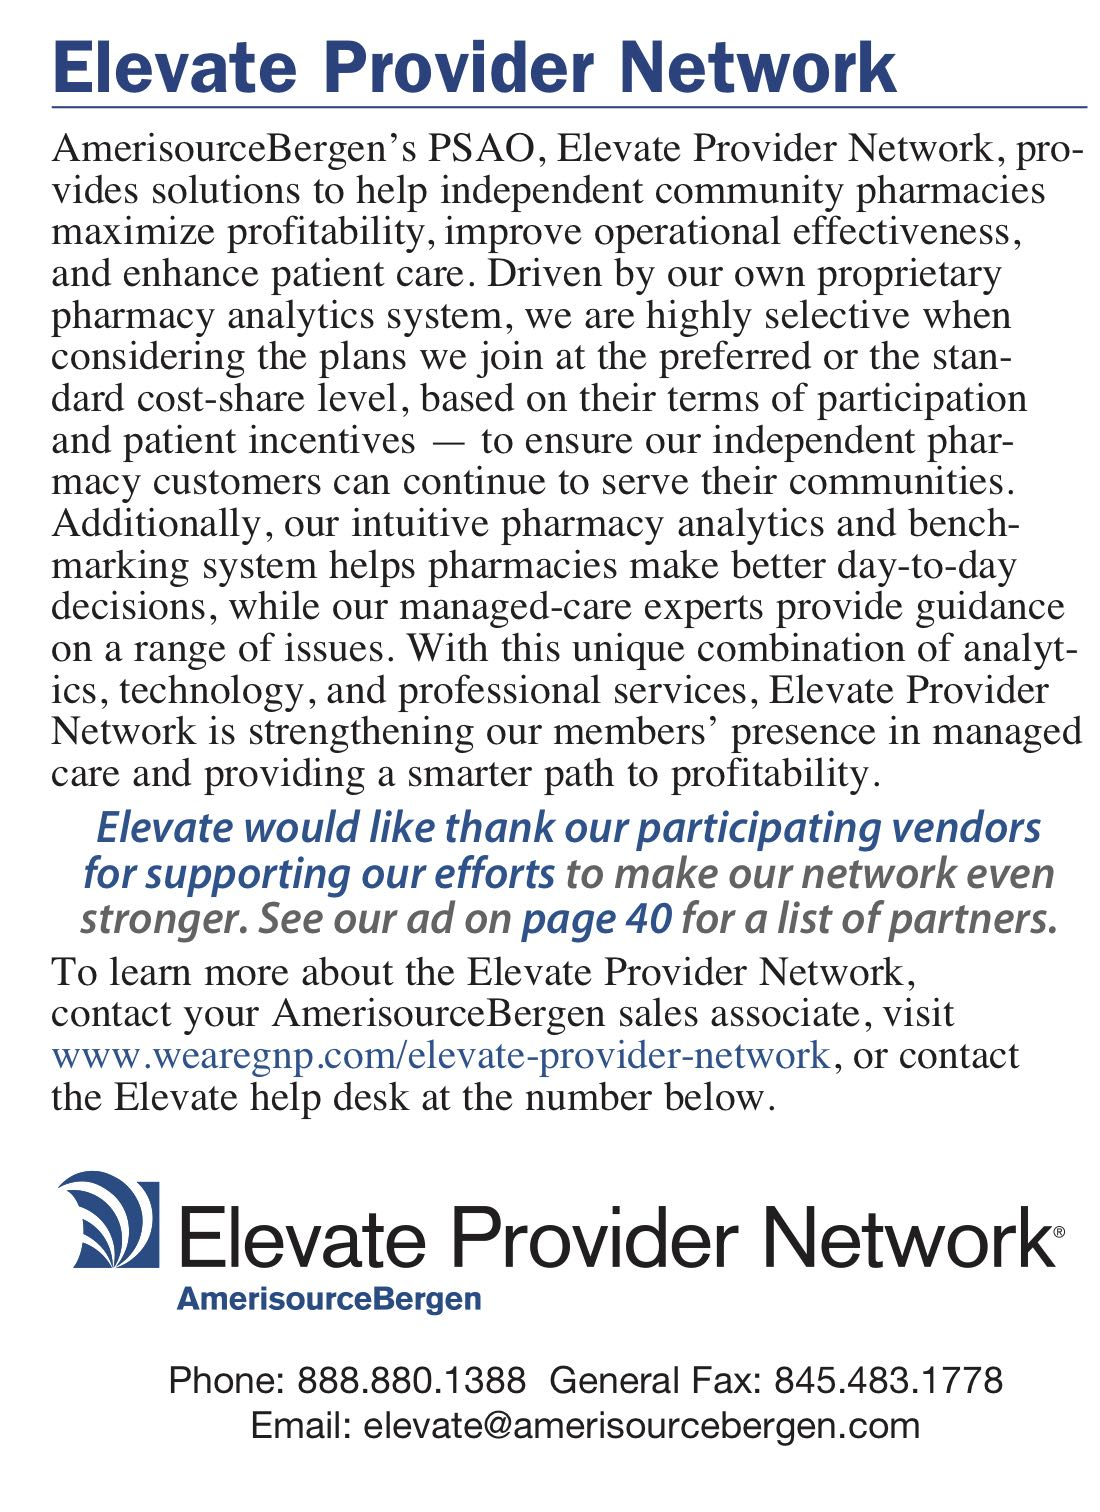 ComputerTalk_2019_Pharmacy_Buyers_Guide_40_Elevate_Provider_Network